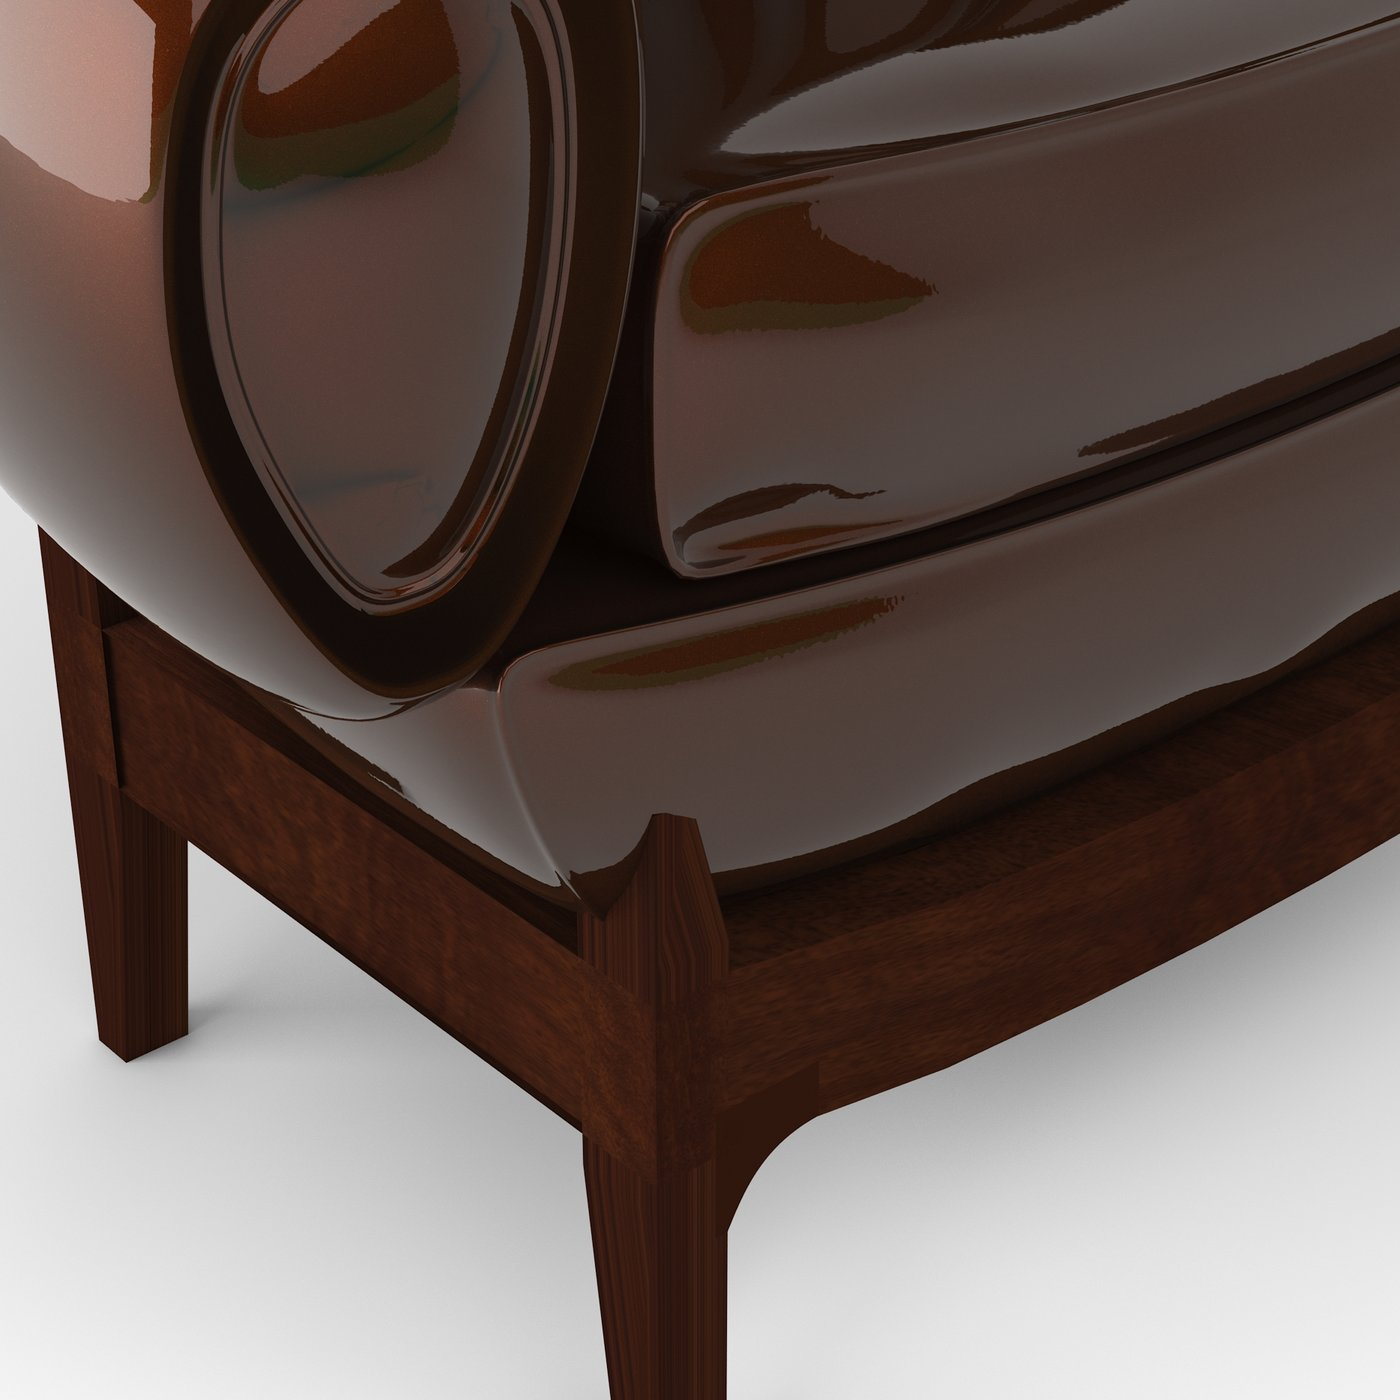 Luxury-Leather-Chair-Design-Materials-Lights-Rendering-3DSMAX 3D model